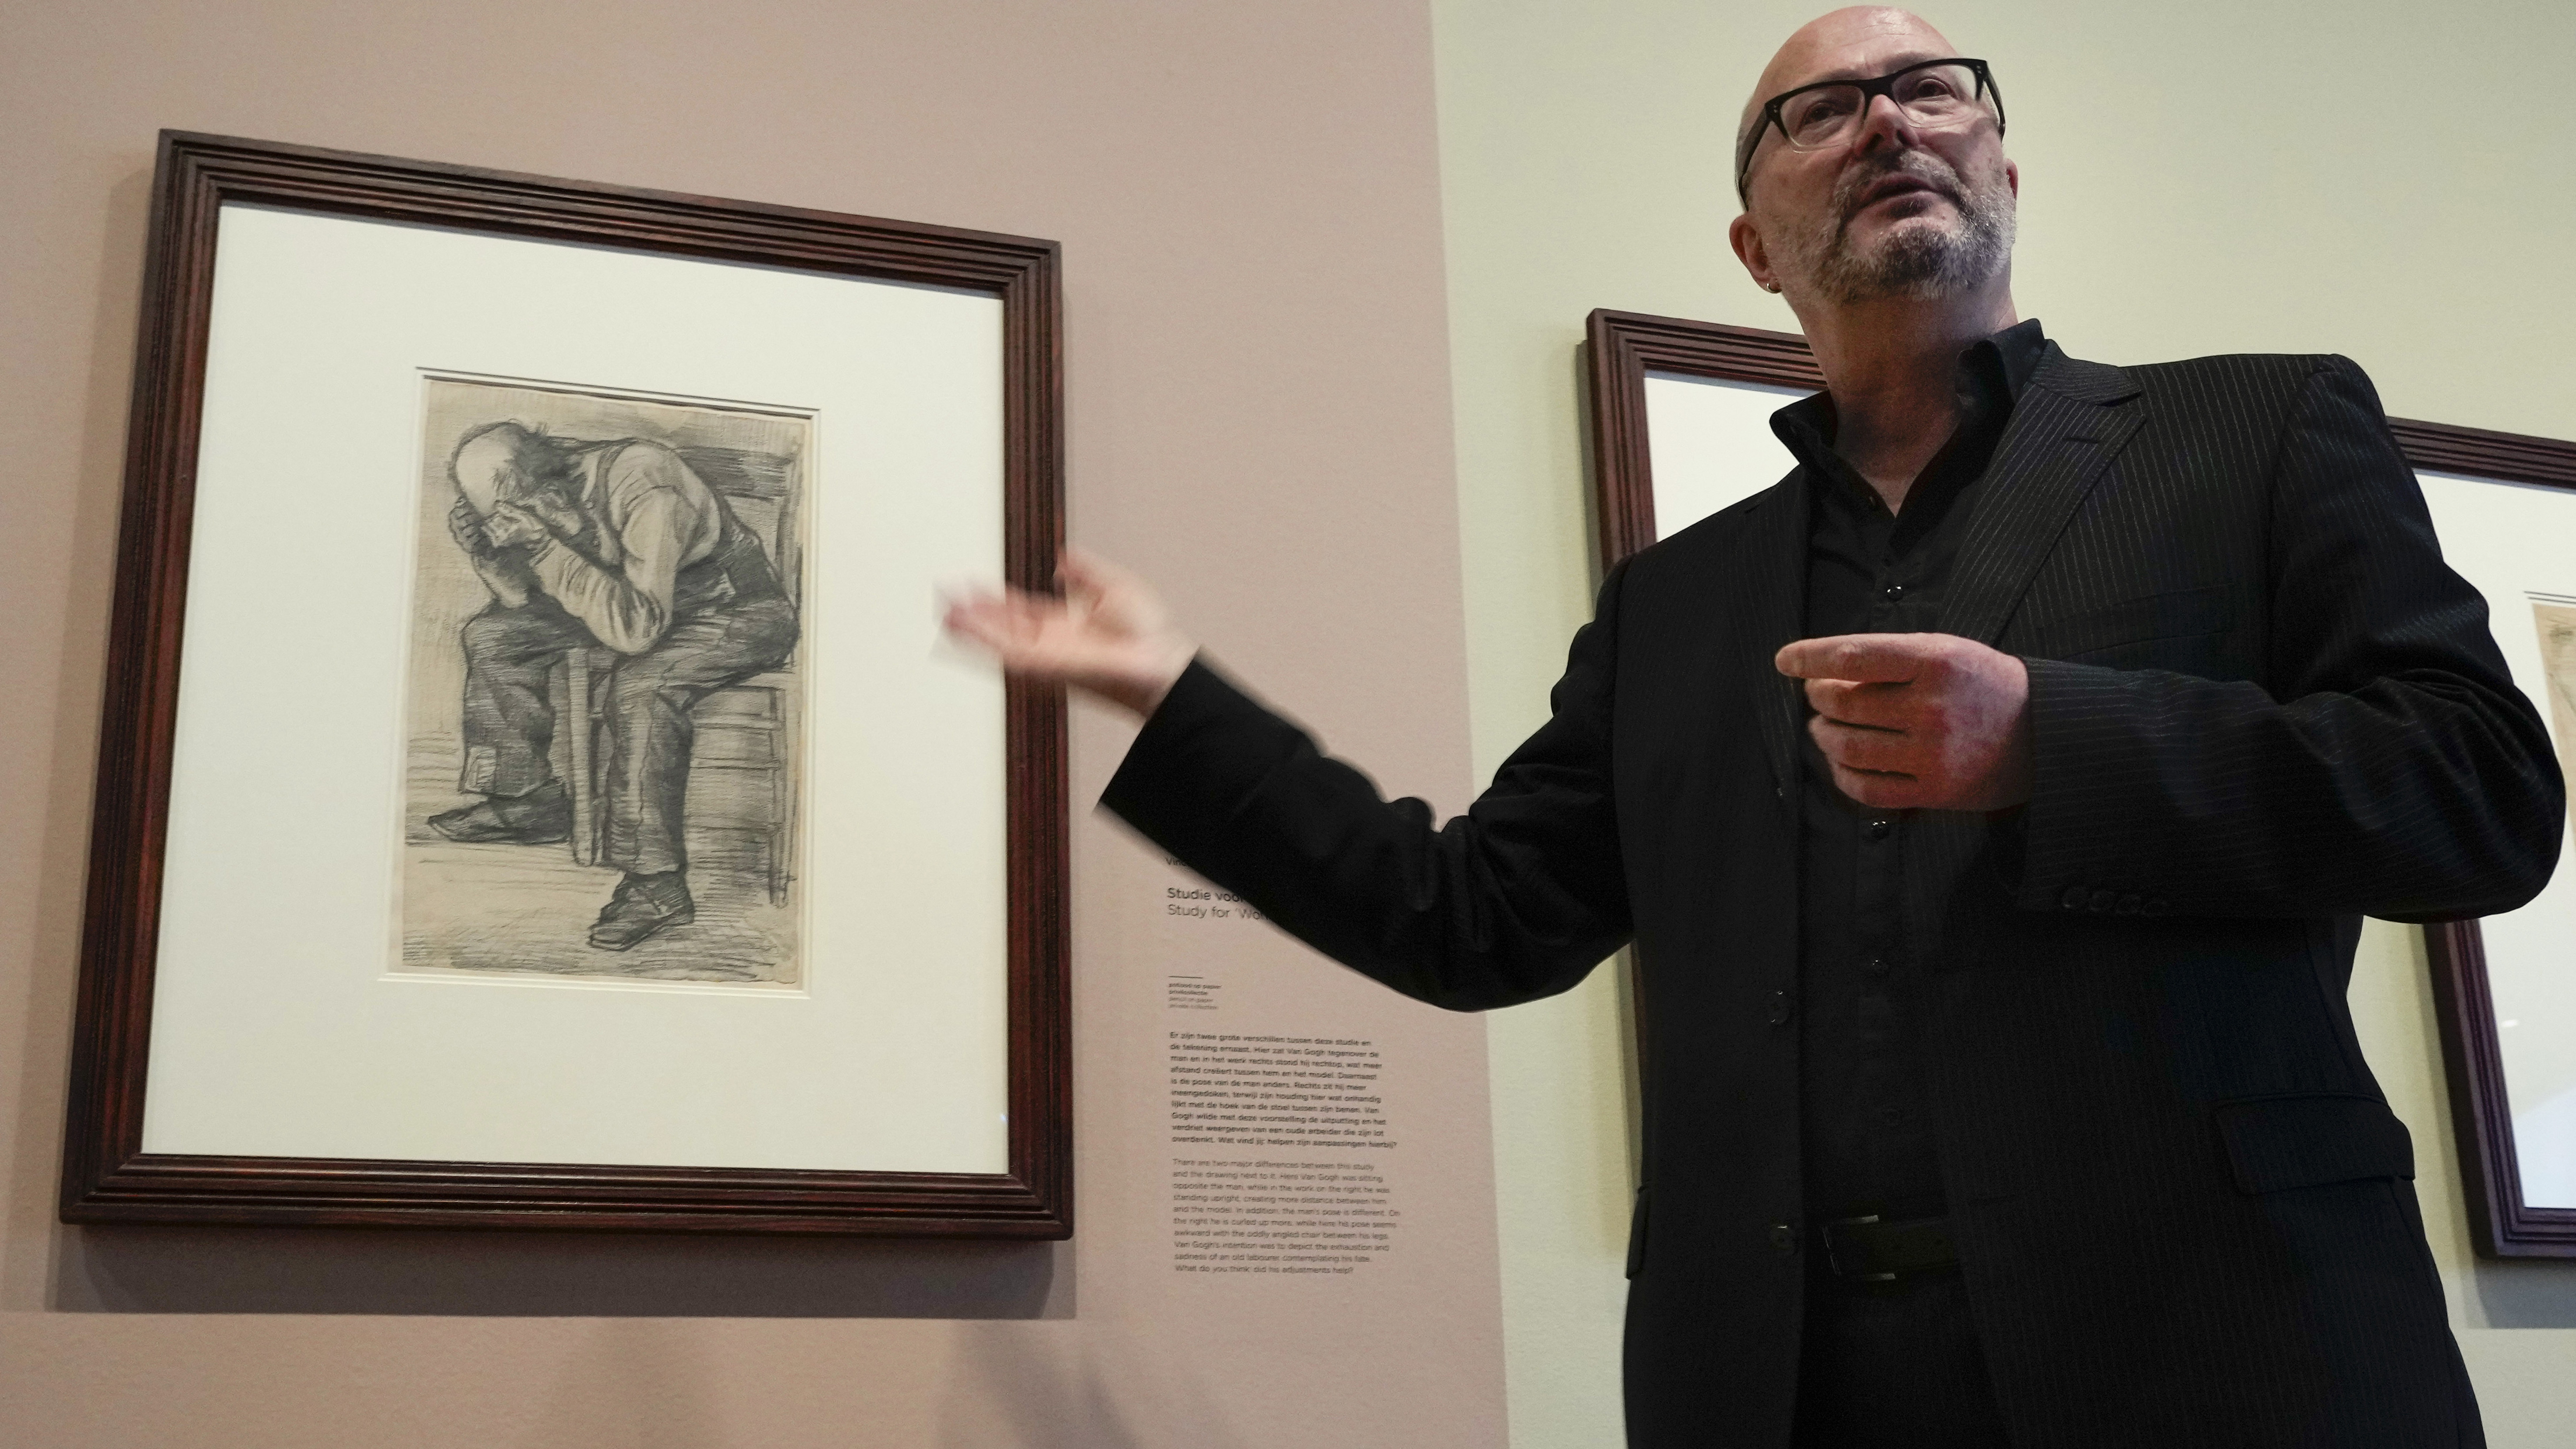 """Senior researcher Teio Meedendorp gestures during the presentation of Study for """"Worn Out"""", left, a drawing by Dutch master Vincent van Gogh, dated Nov. 1882, going on public display for the first time."""